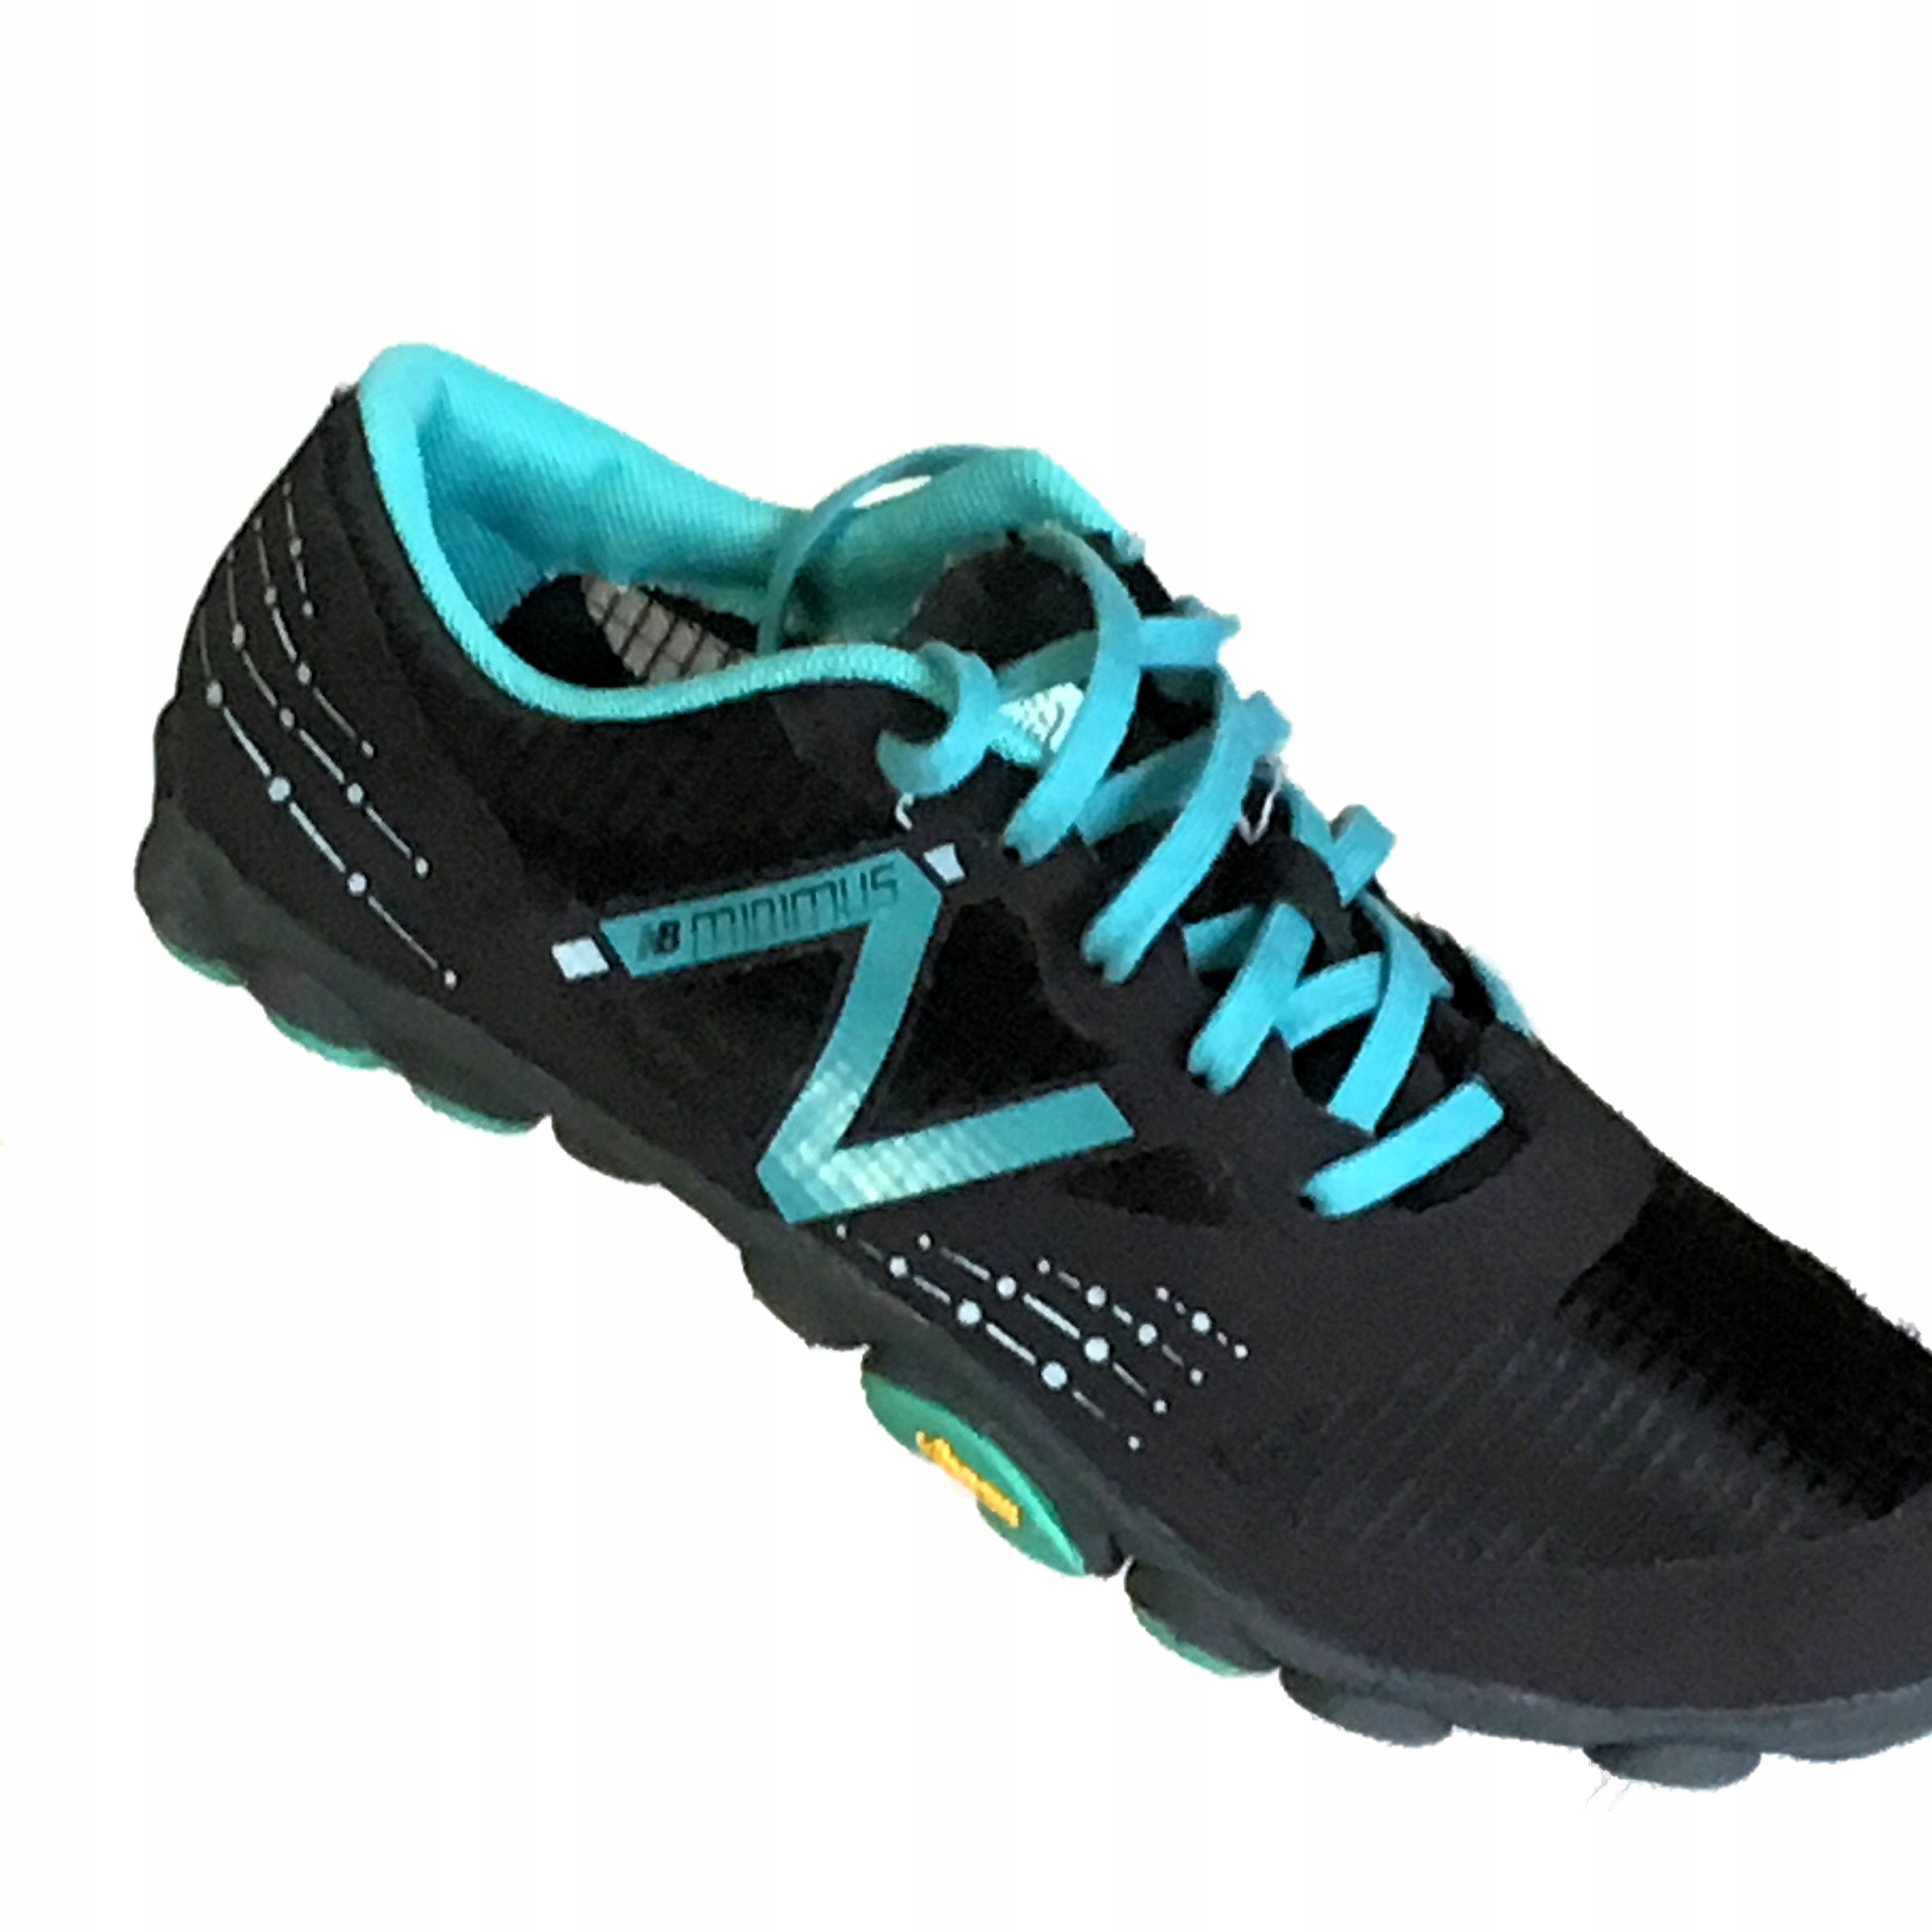 New Balance MINIMUS VIBRAM_Buty do biegania_36,5